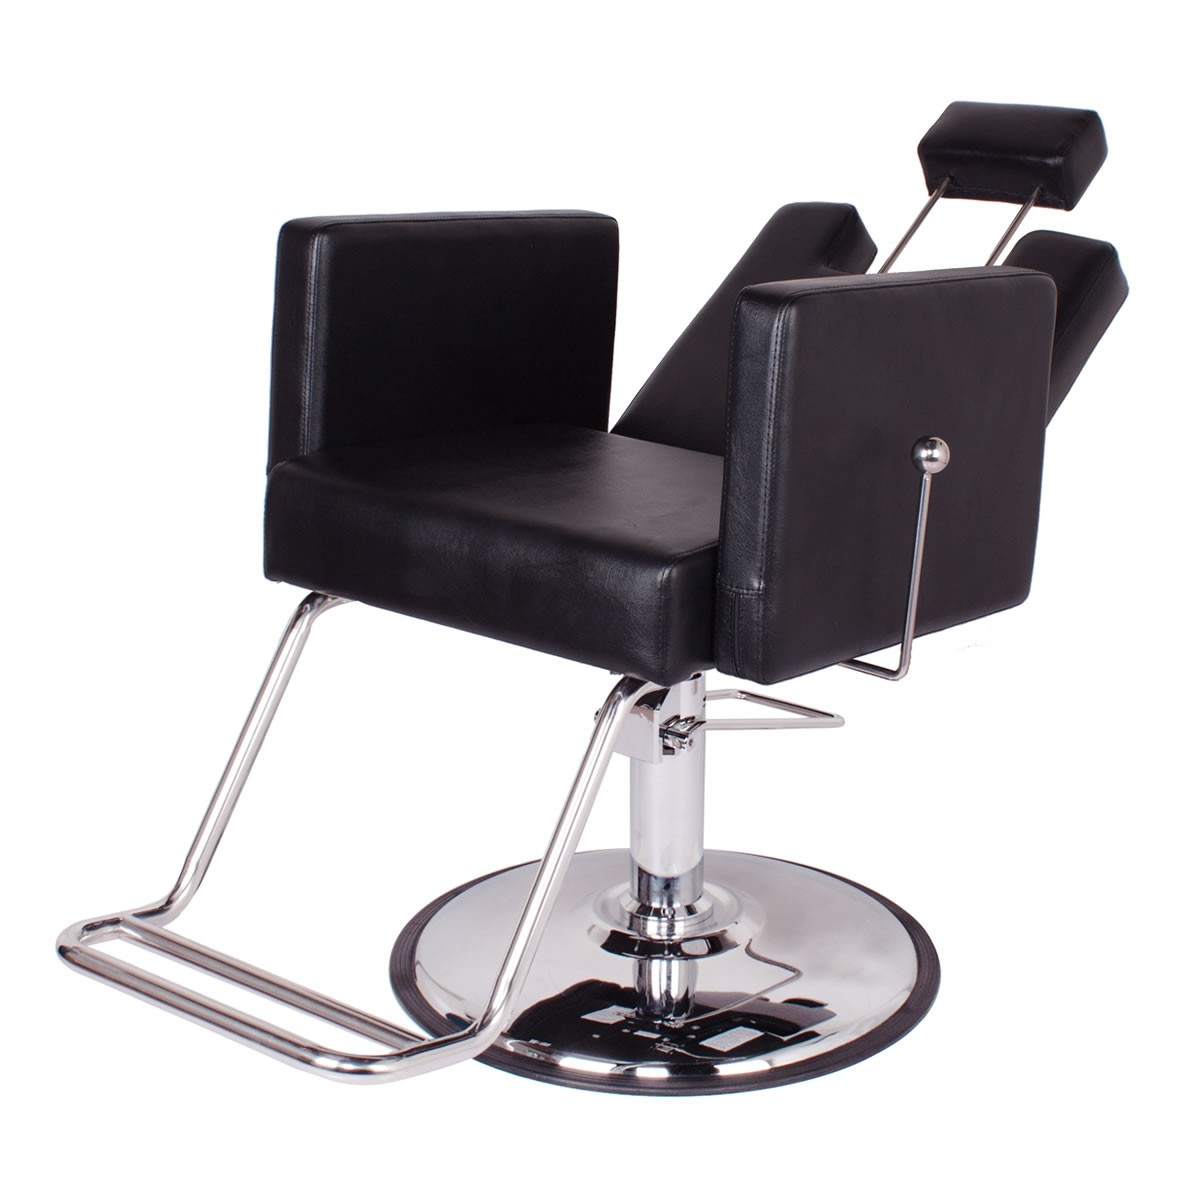 """CANON"" Reclining Salon Chair, Reclining Shampoo Chair, All Purpose Salon Chair"